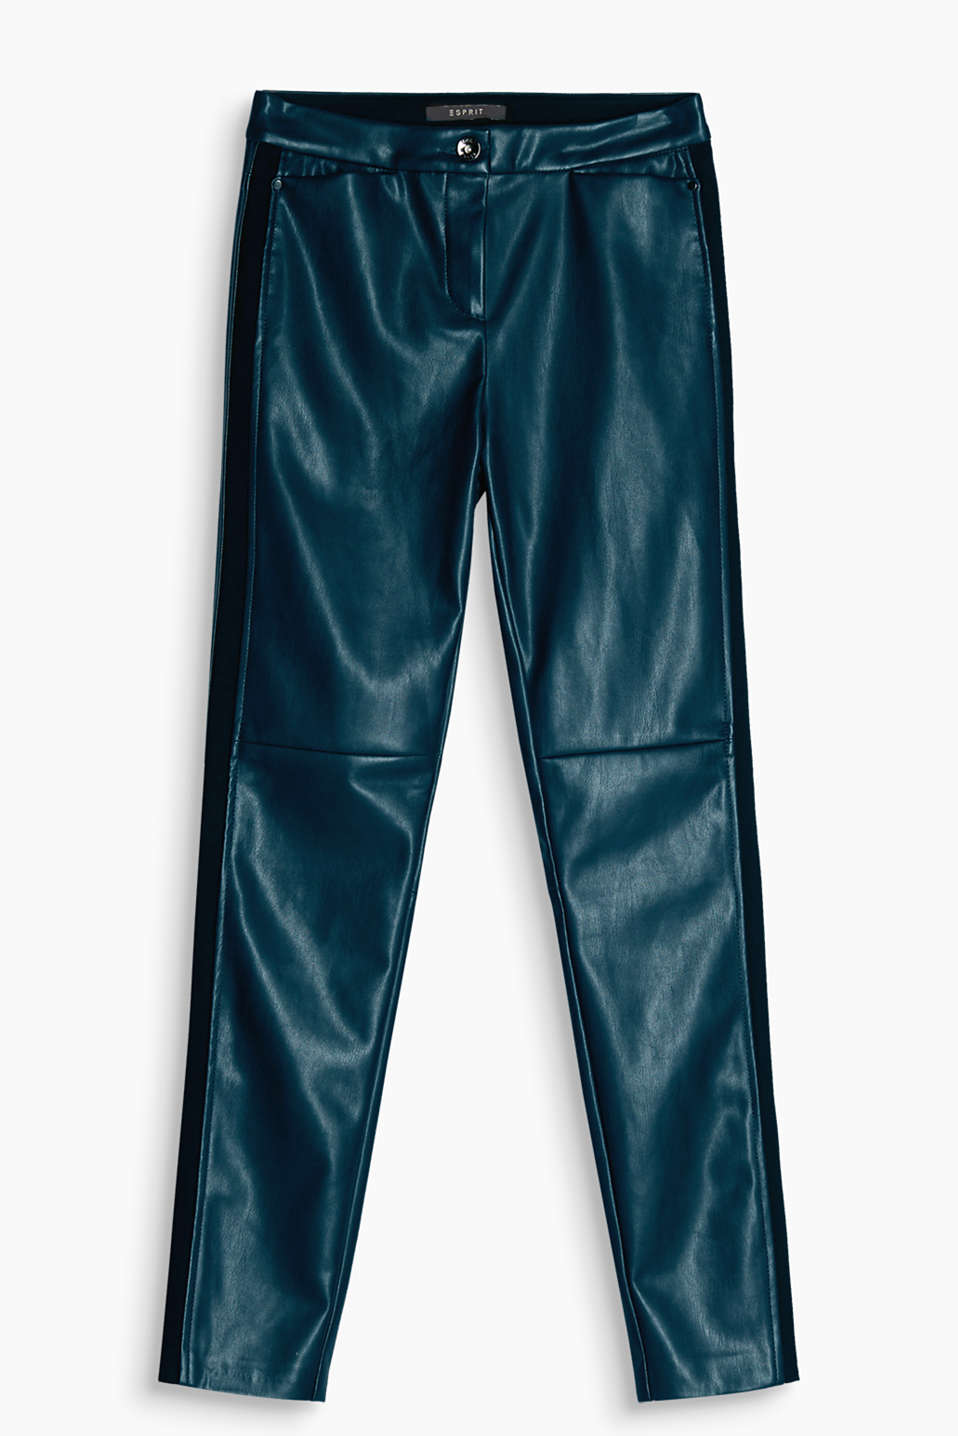 Trendy skinny trousers in a cool leather look with tuxedo stripes in jersey